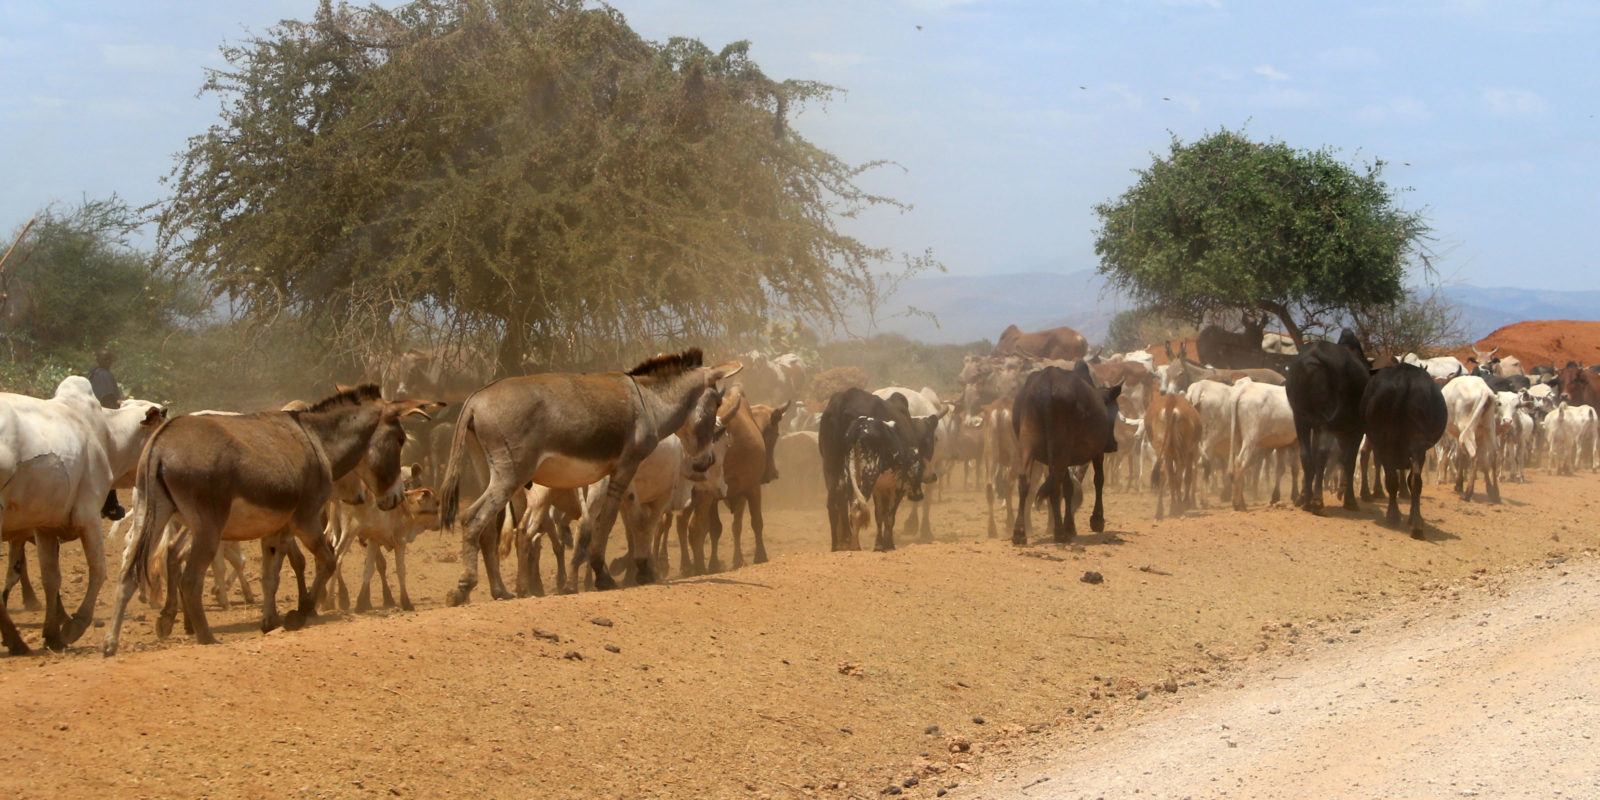 Prevention work in Tanzania: The issue of steady growth of the herds is also approached.